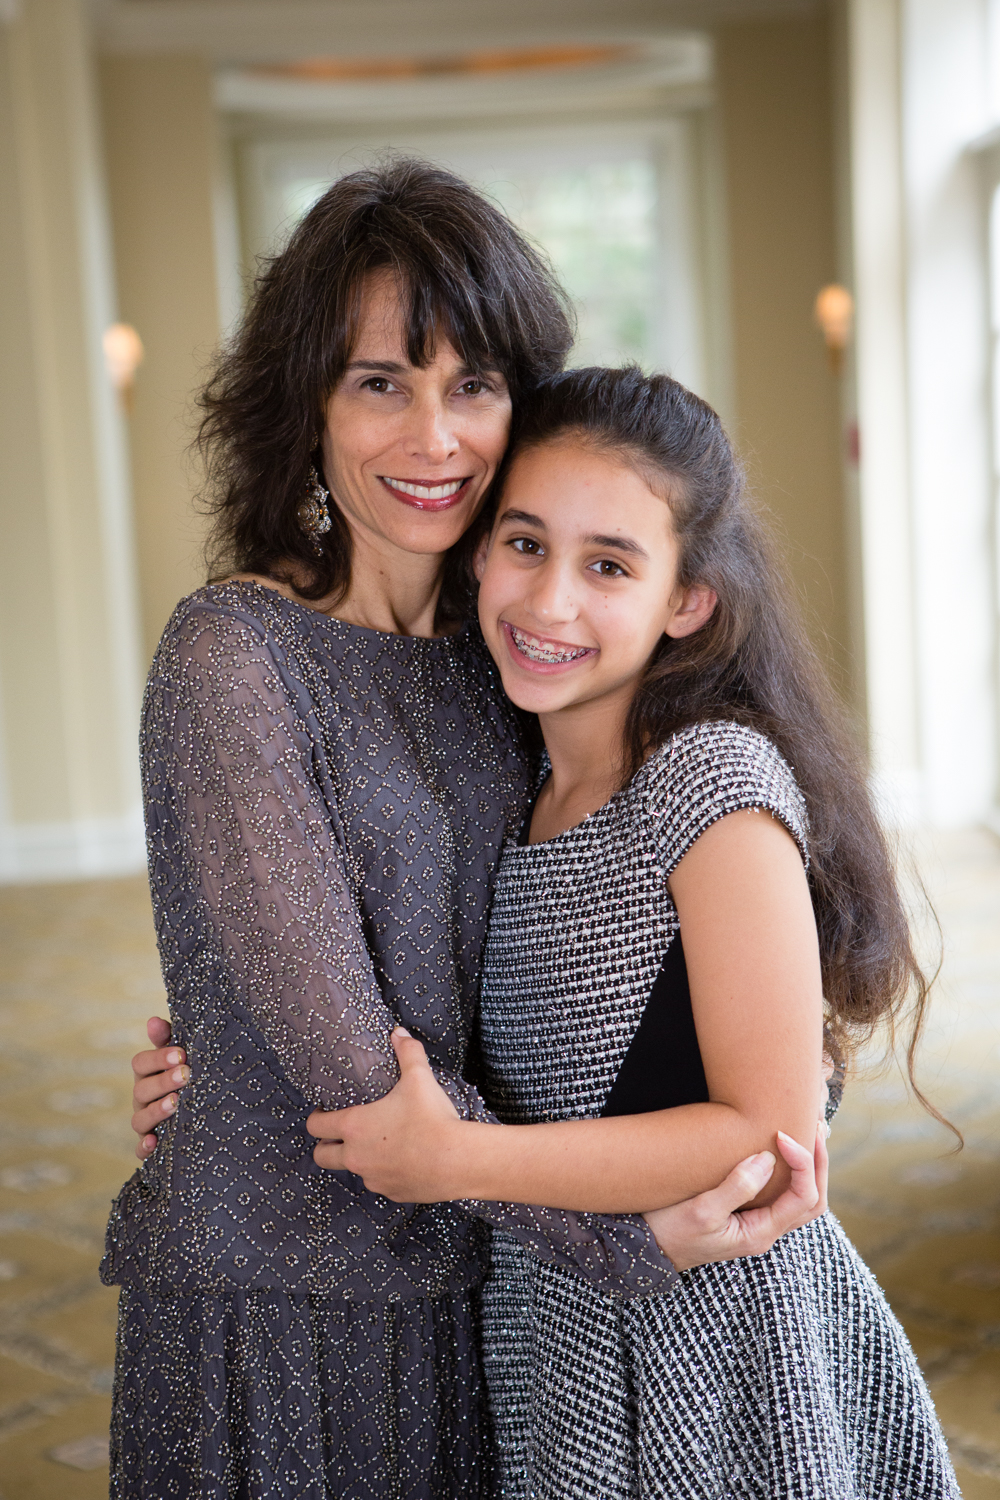 Photo of mother and daughter embracing